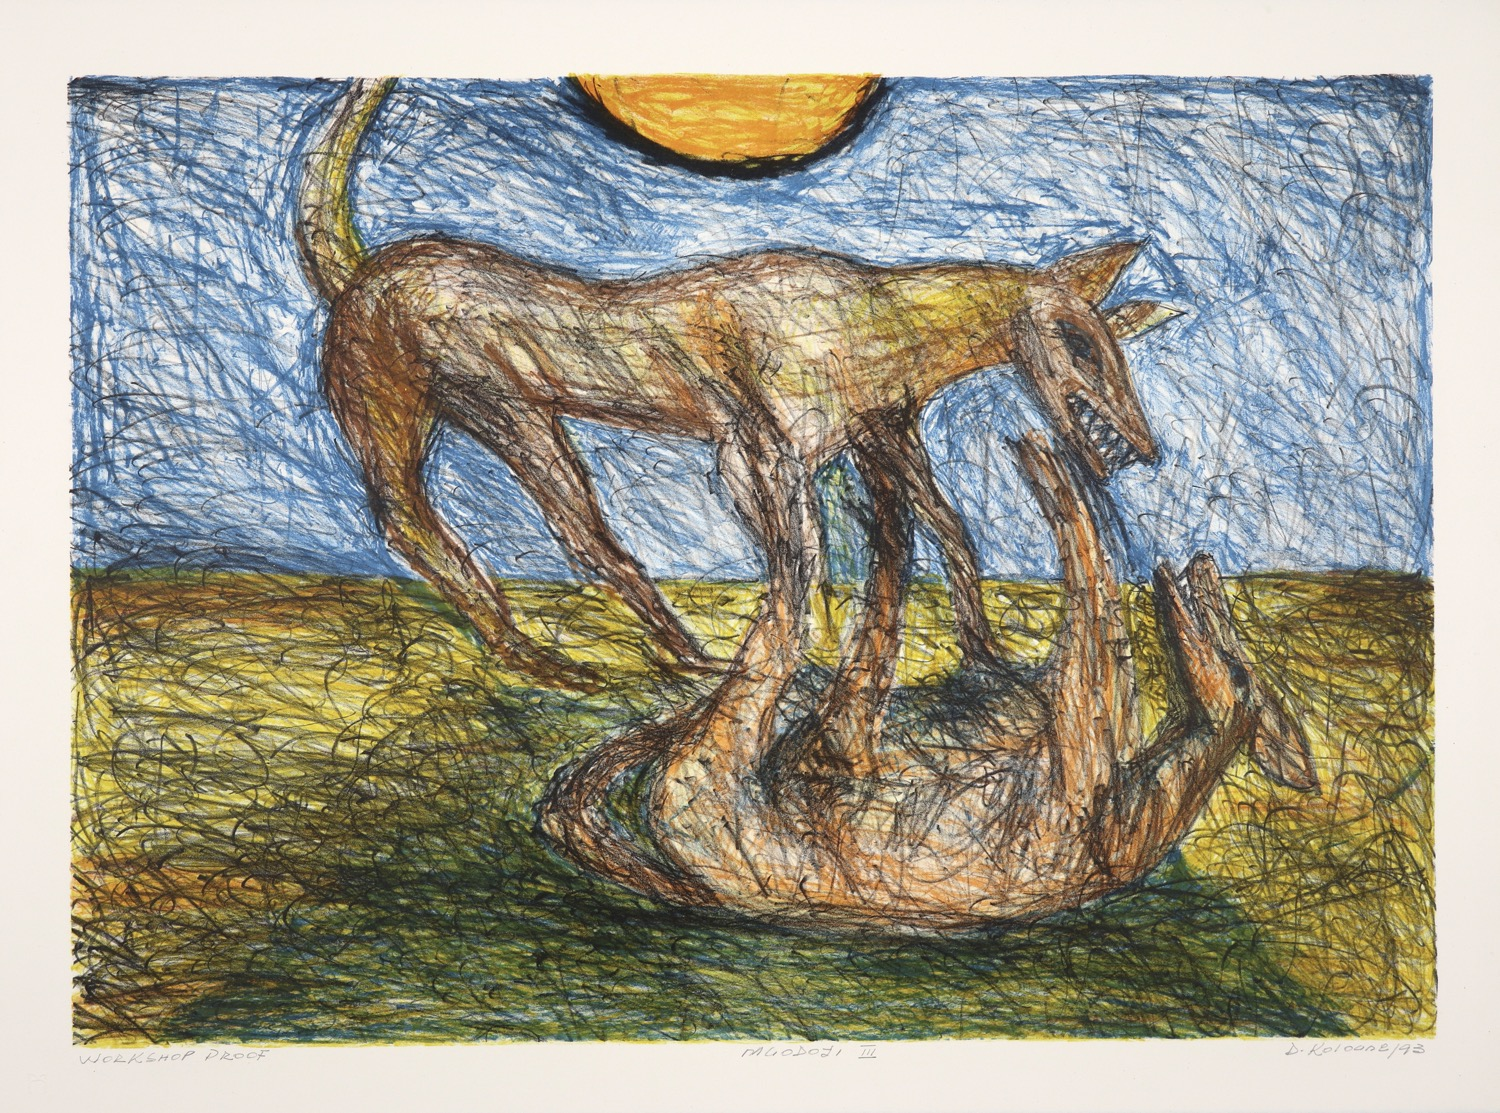 Landscape with sun with two dogs in the foreground fighting, one of them lying on its back.